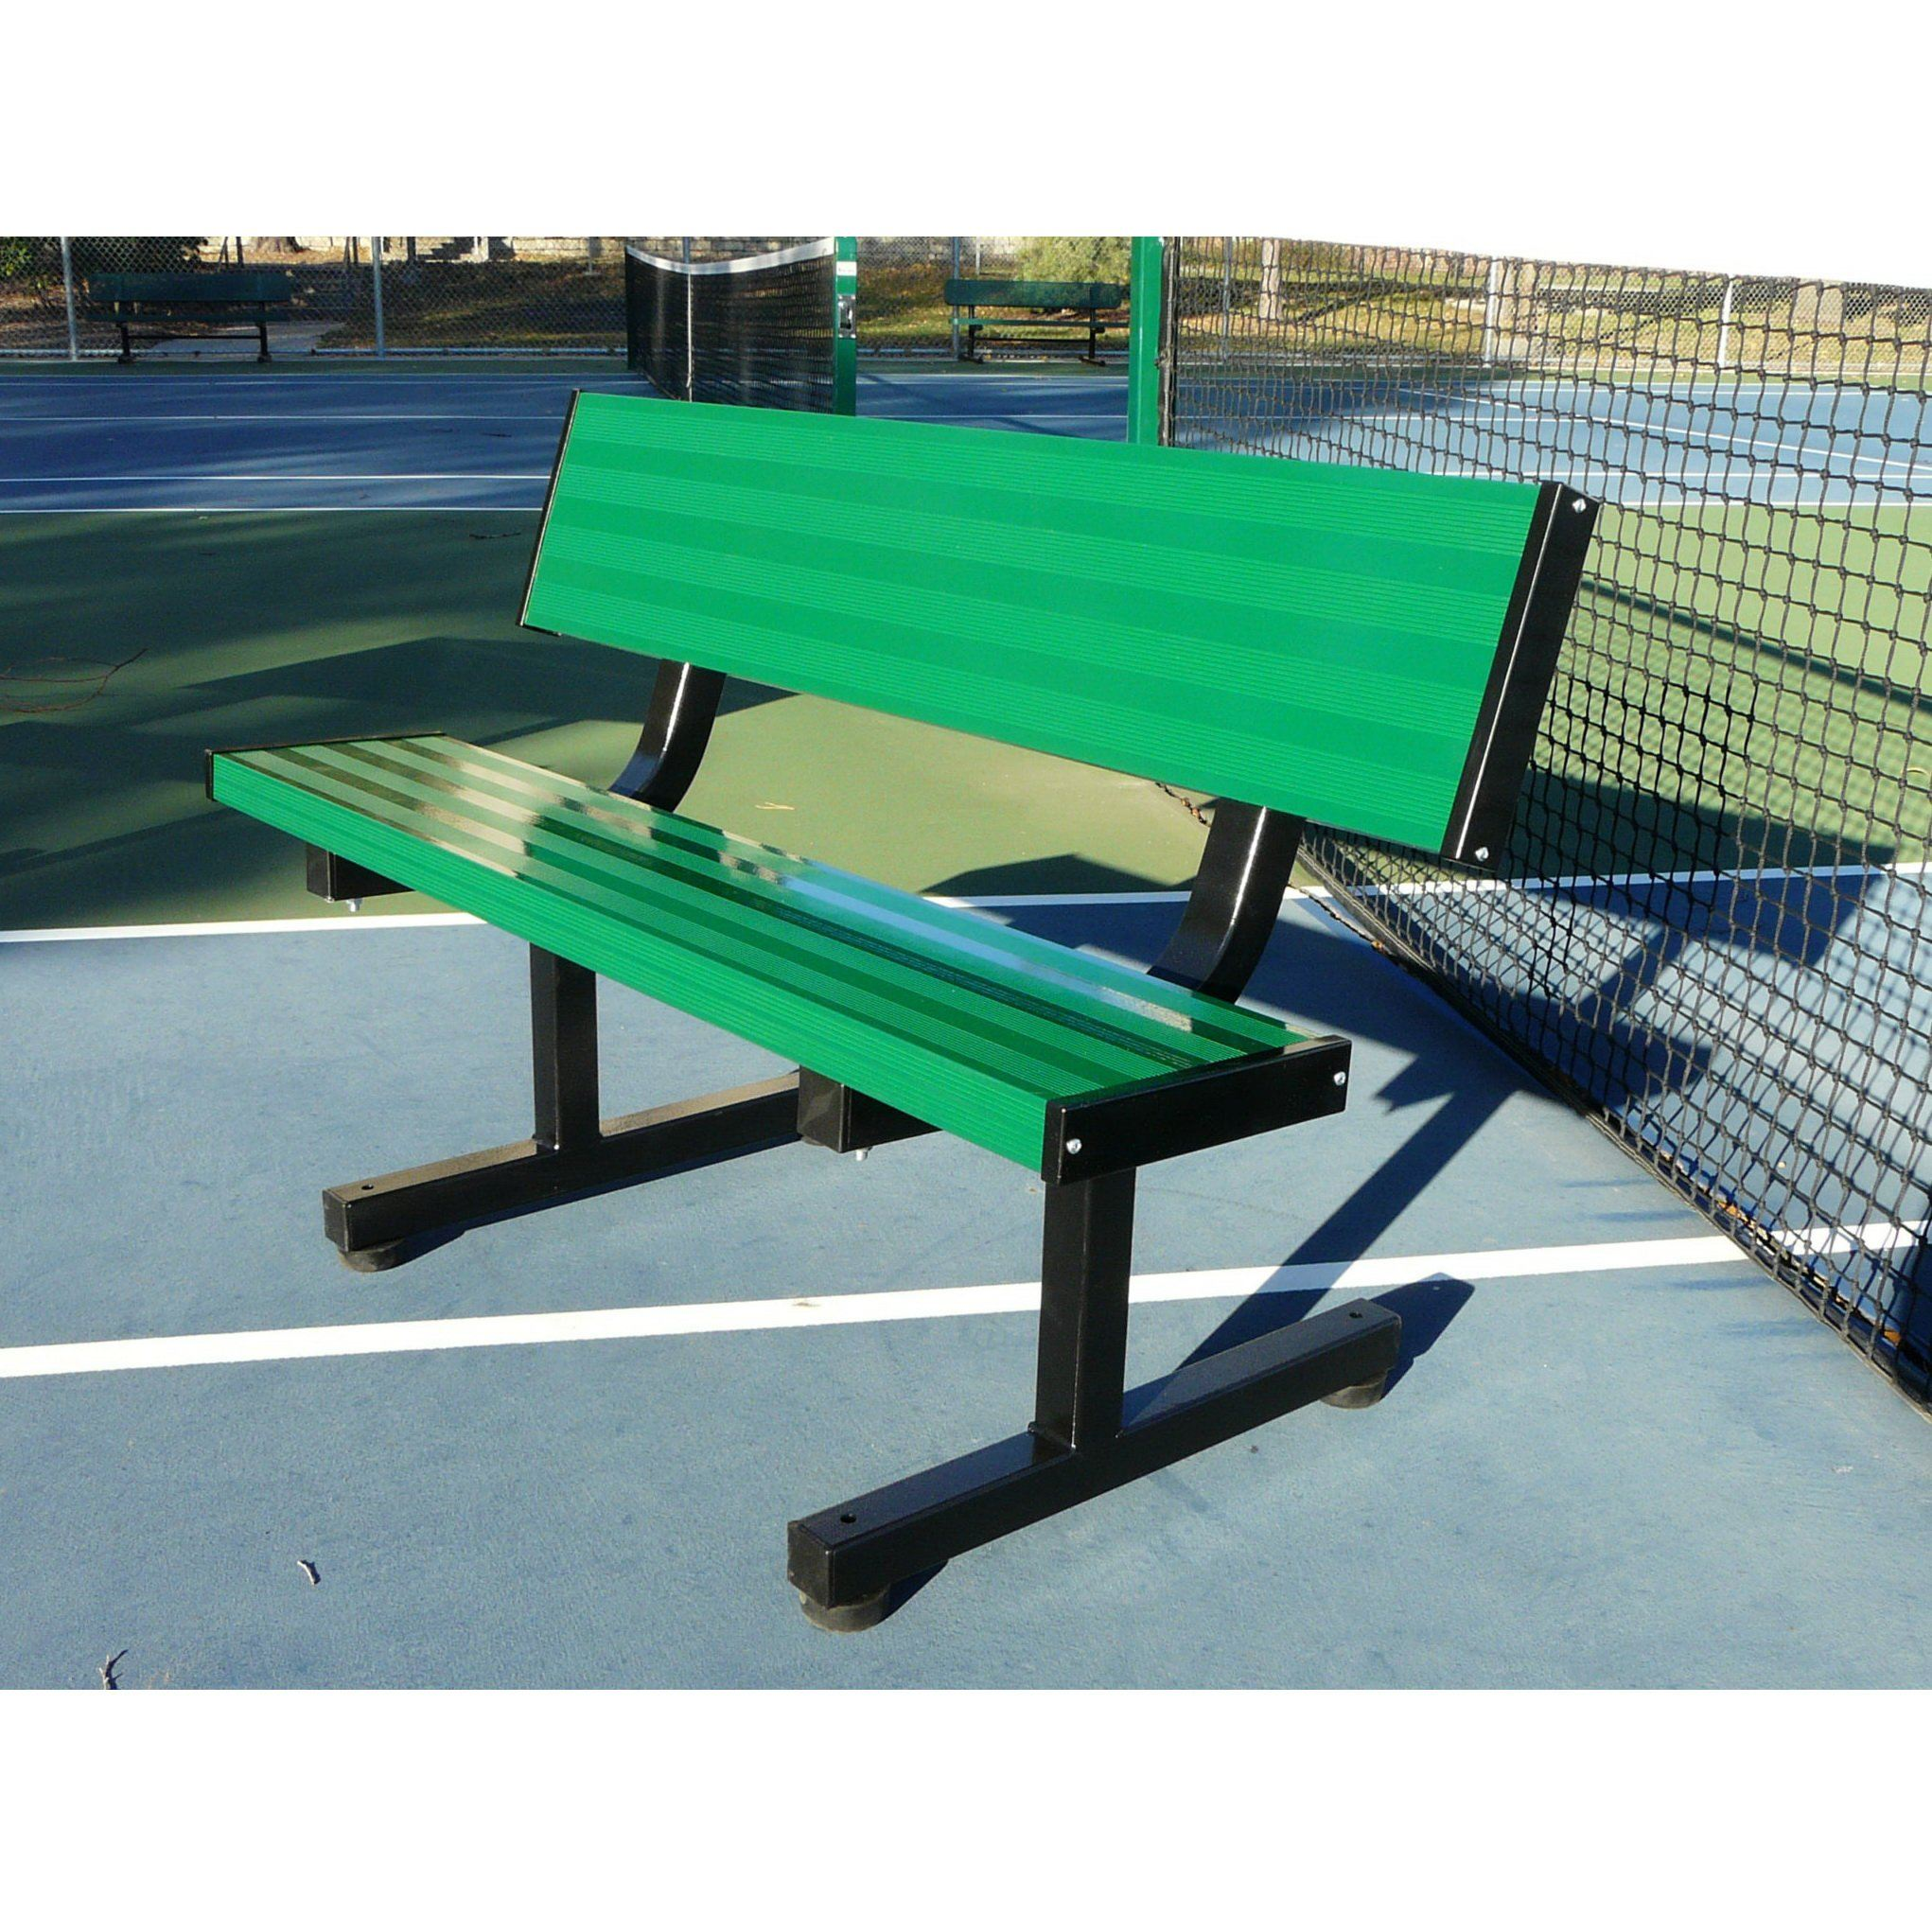 Bison 4′ Tennis Player Bench - Pitch Pro Direct